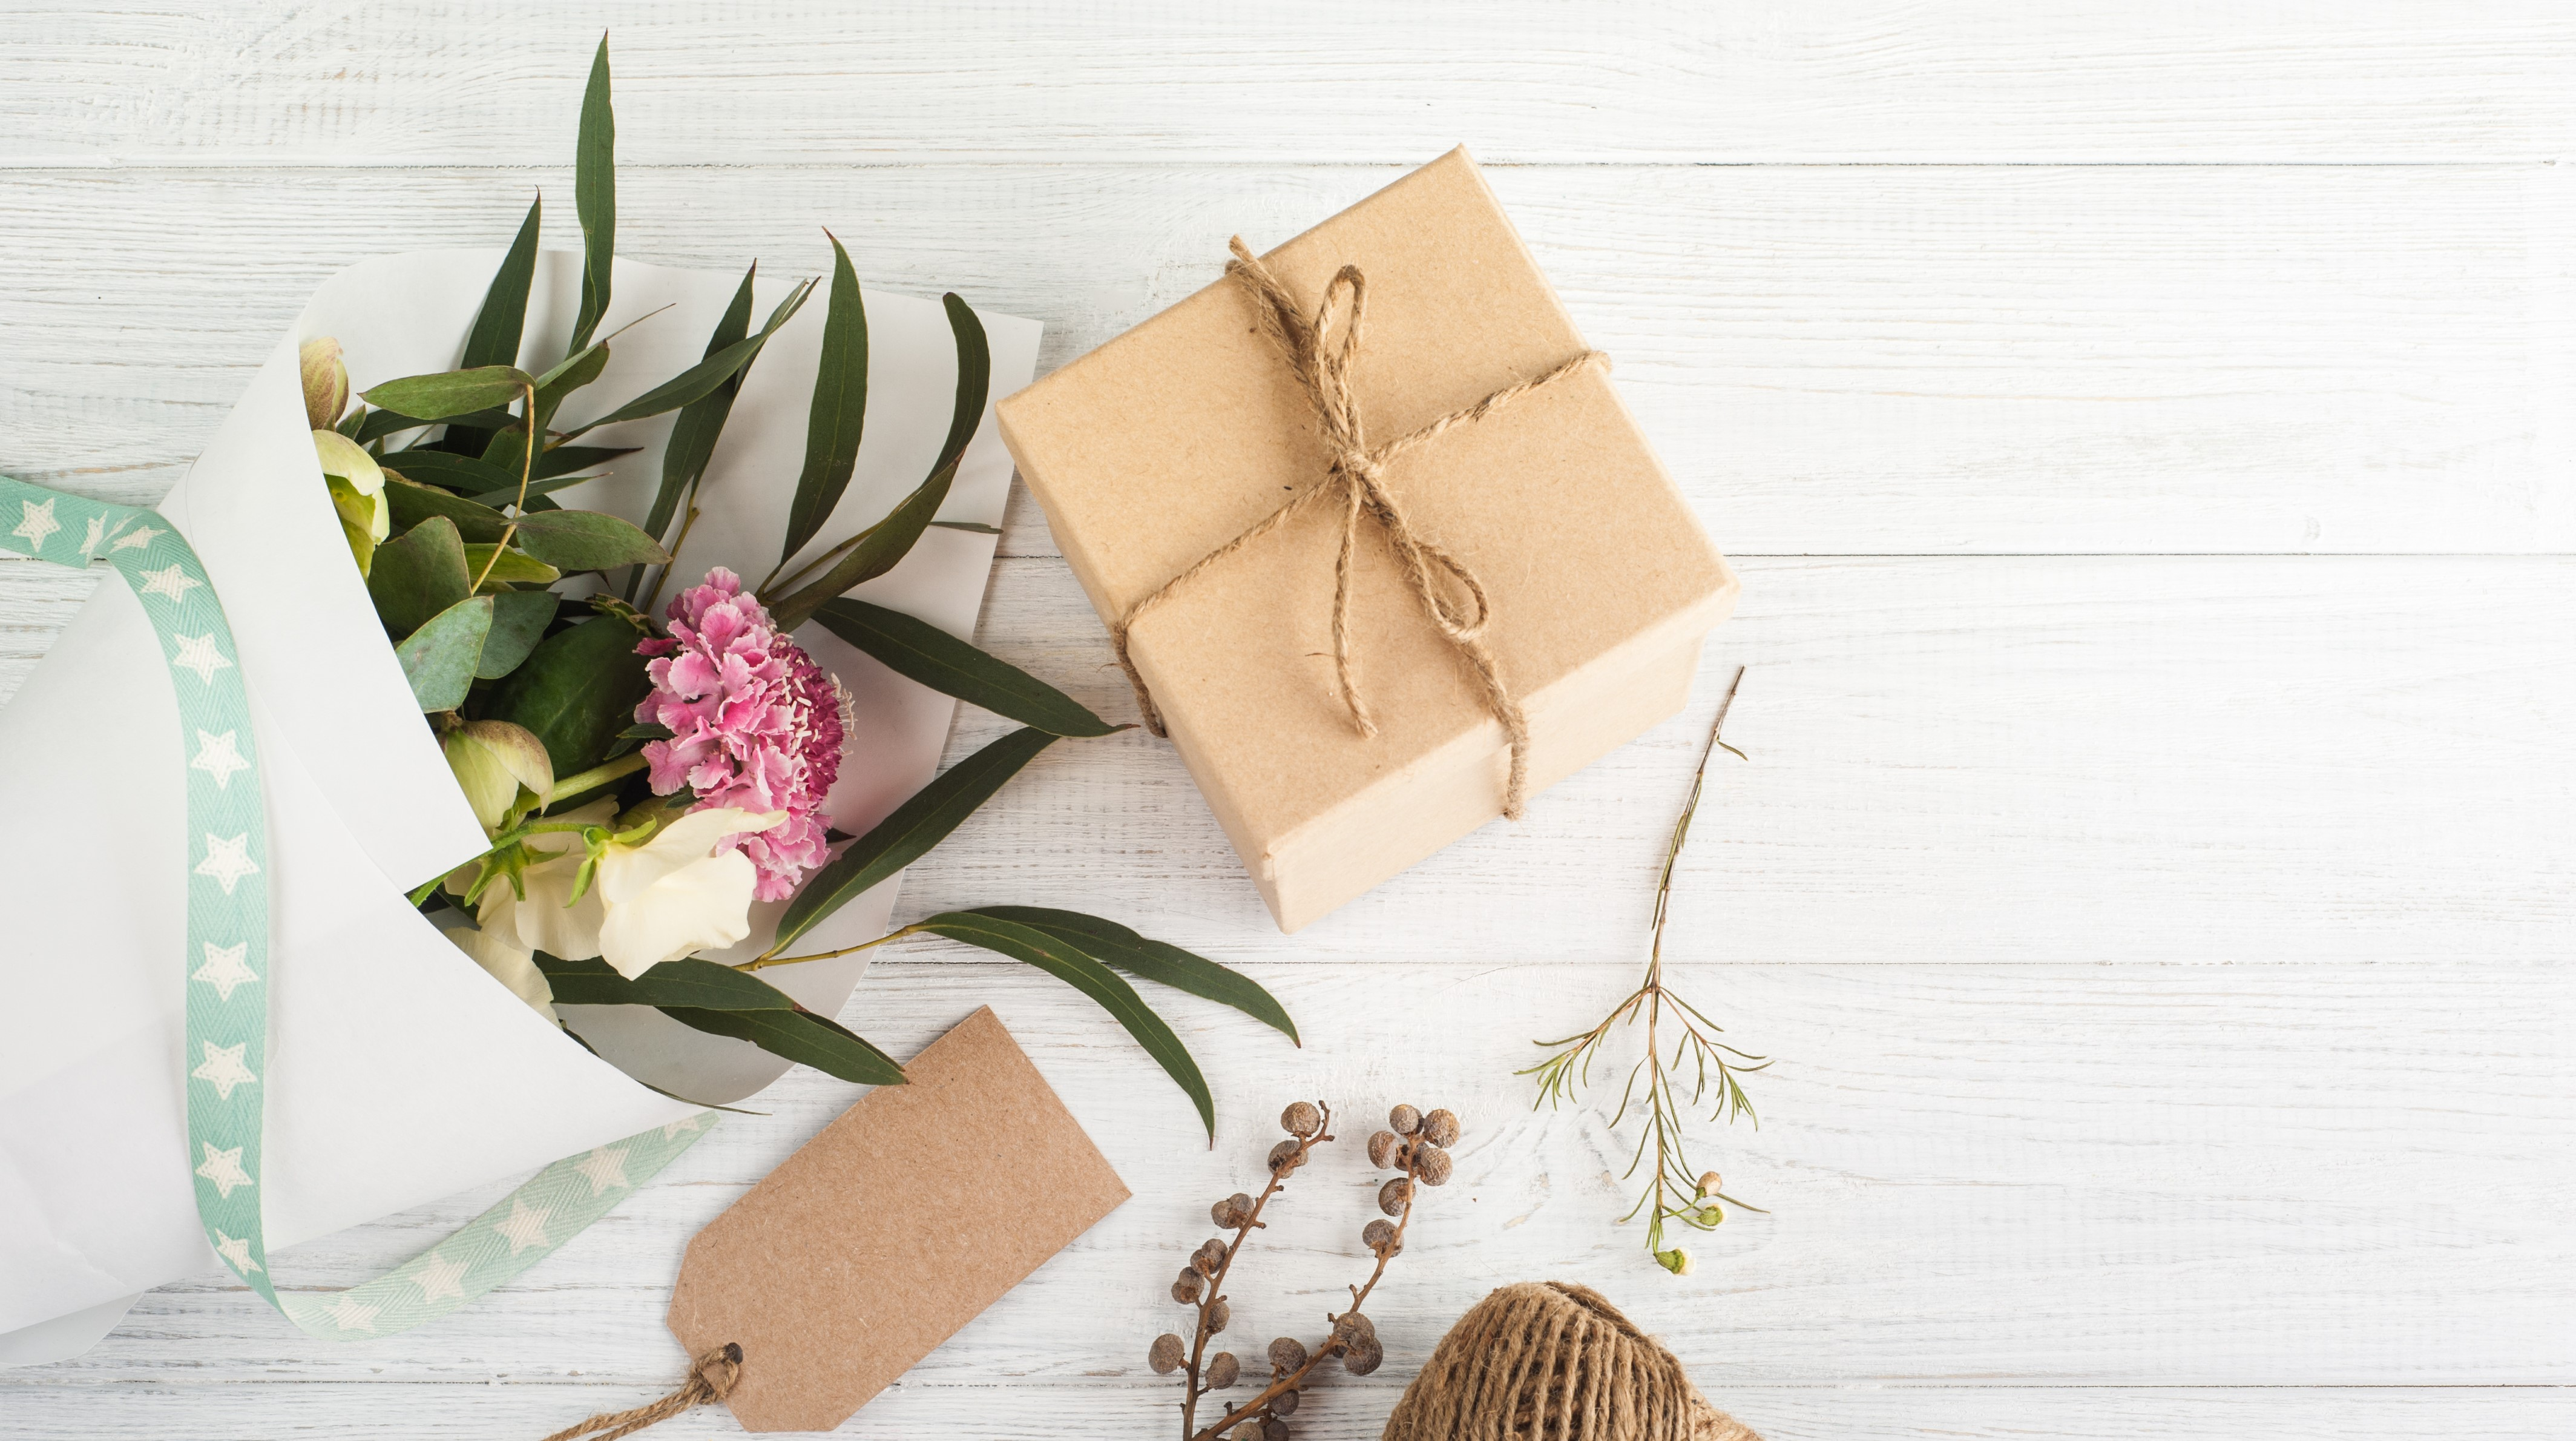 ClosetMaid's Guide to Wedding Gift Registries